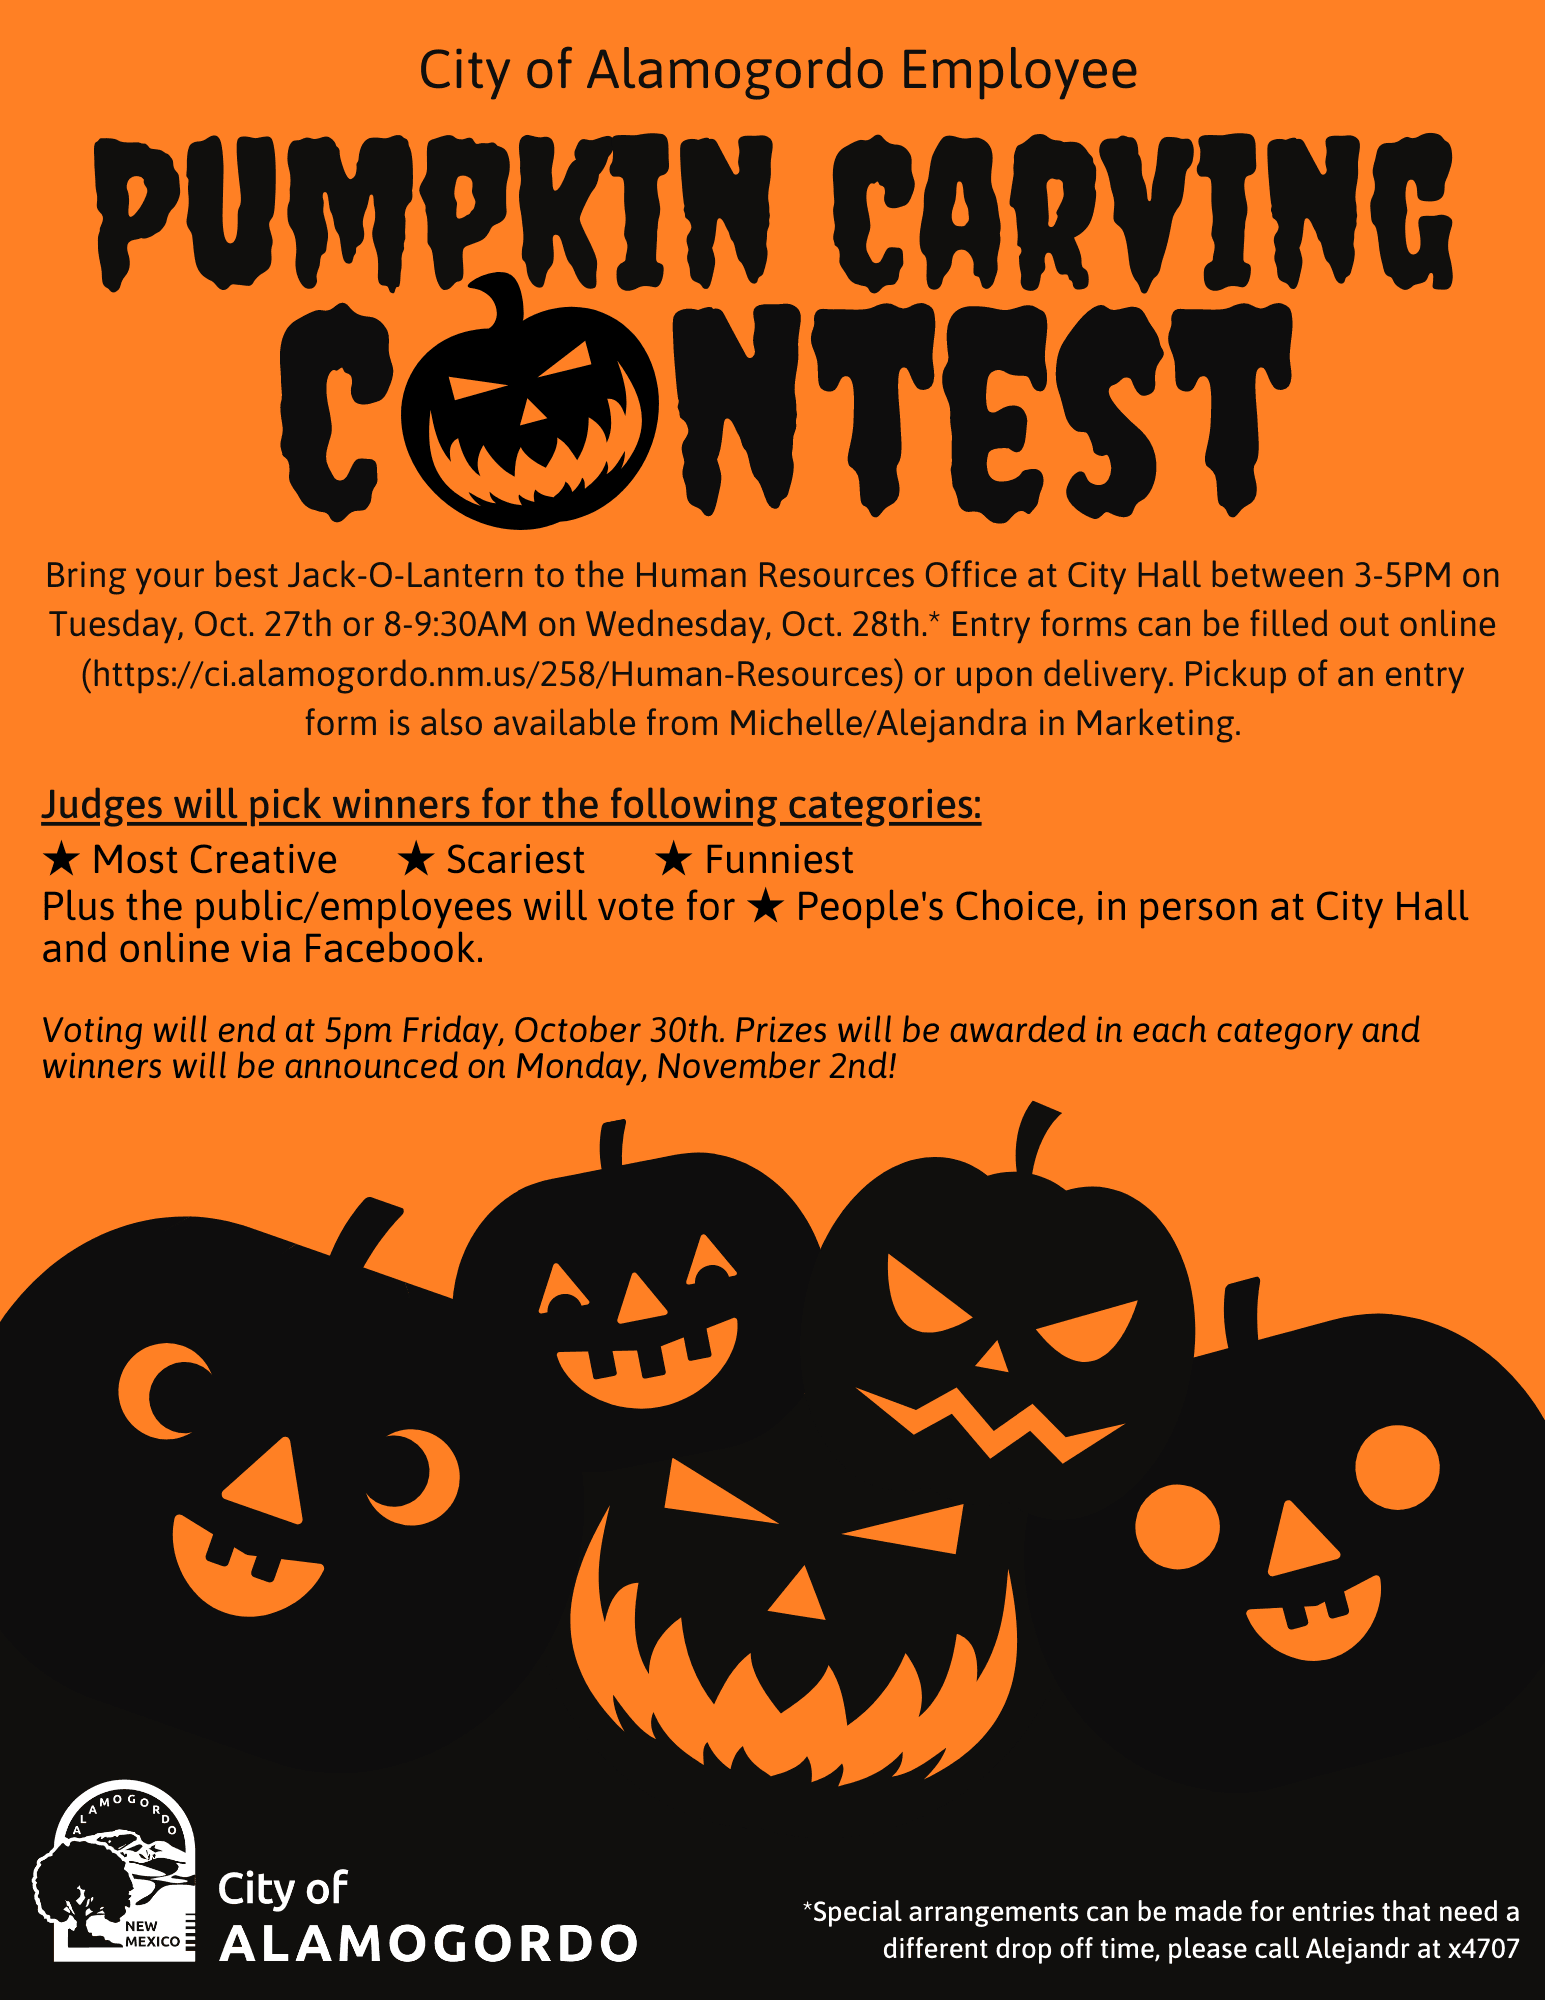 Pumpkin Carving Contest Instructions